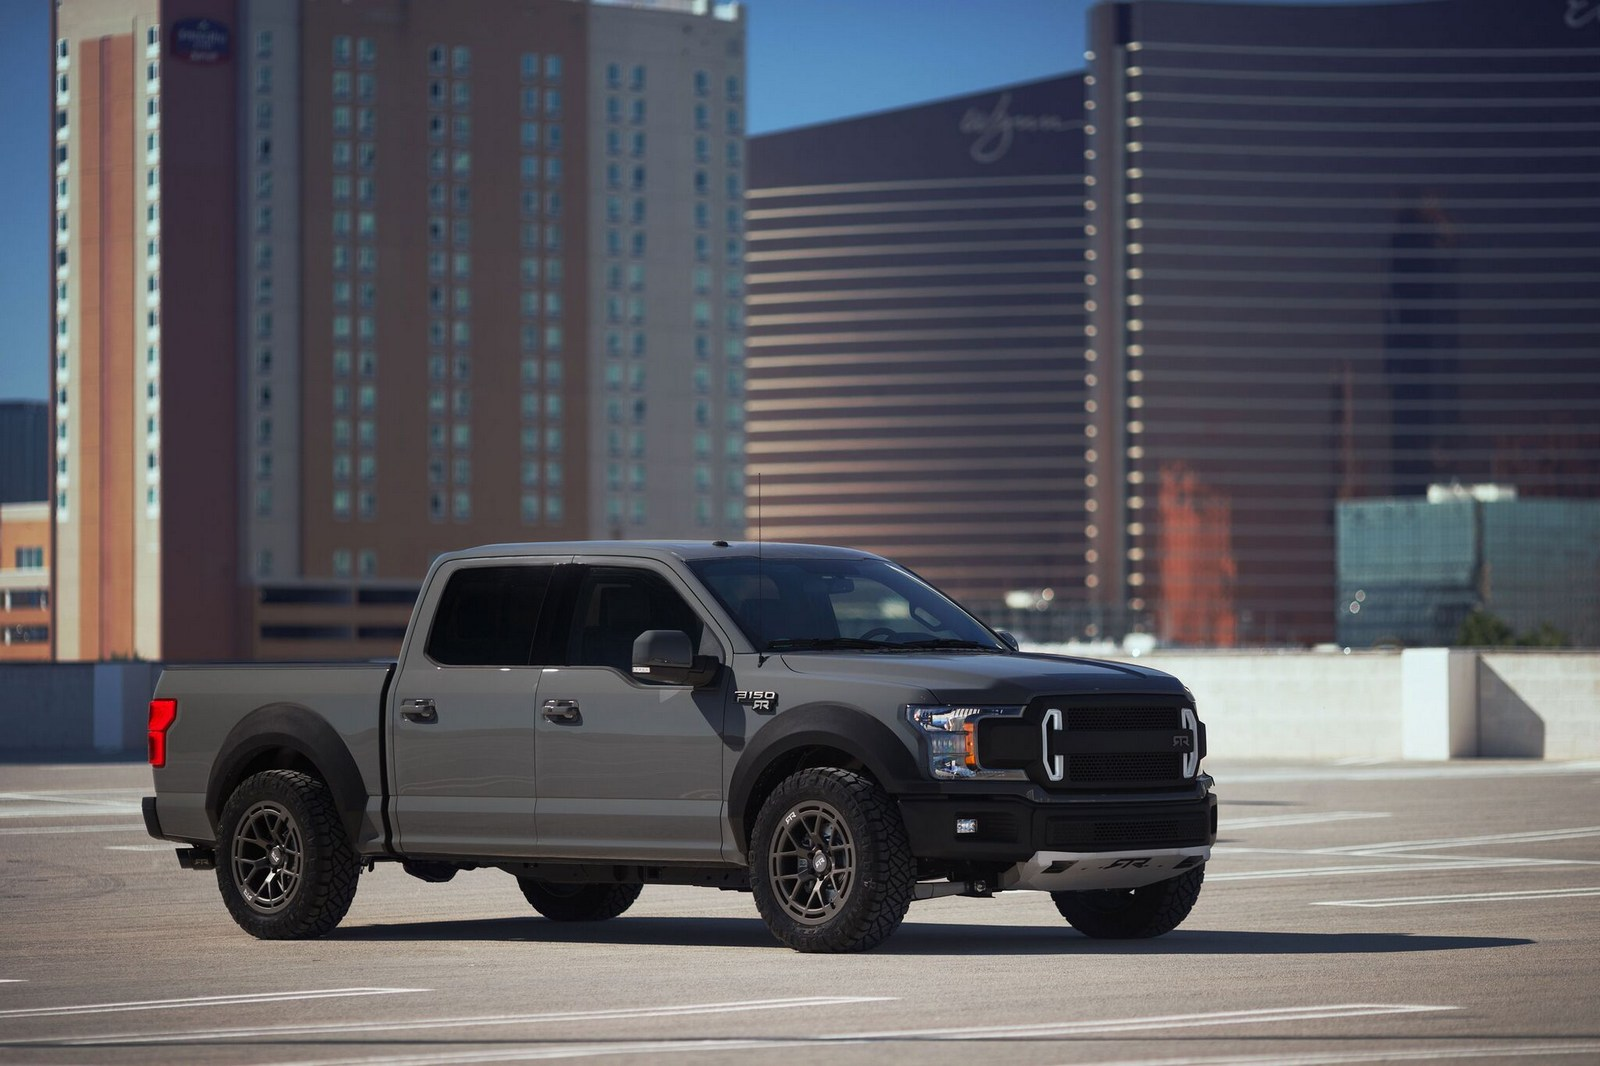 Ford_F-150_RTR_Muscle_Truck_concept0000